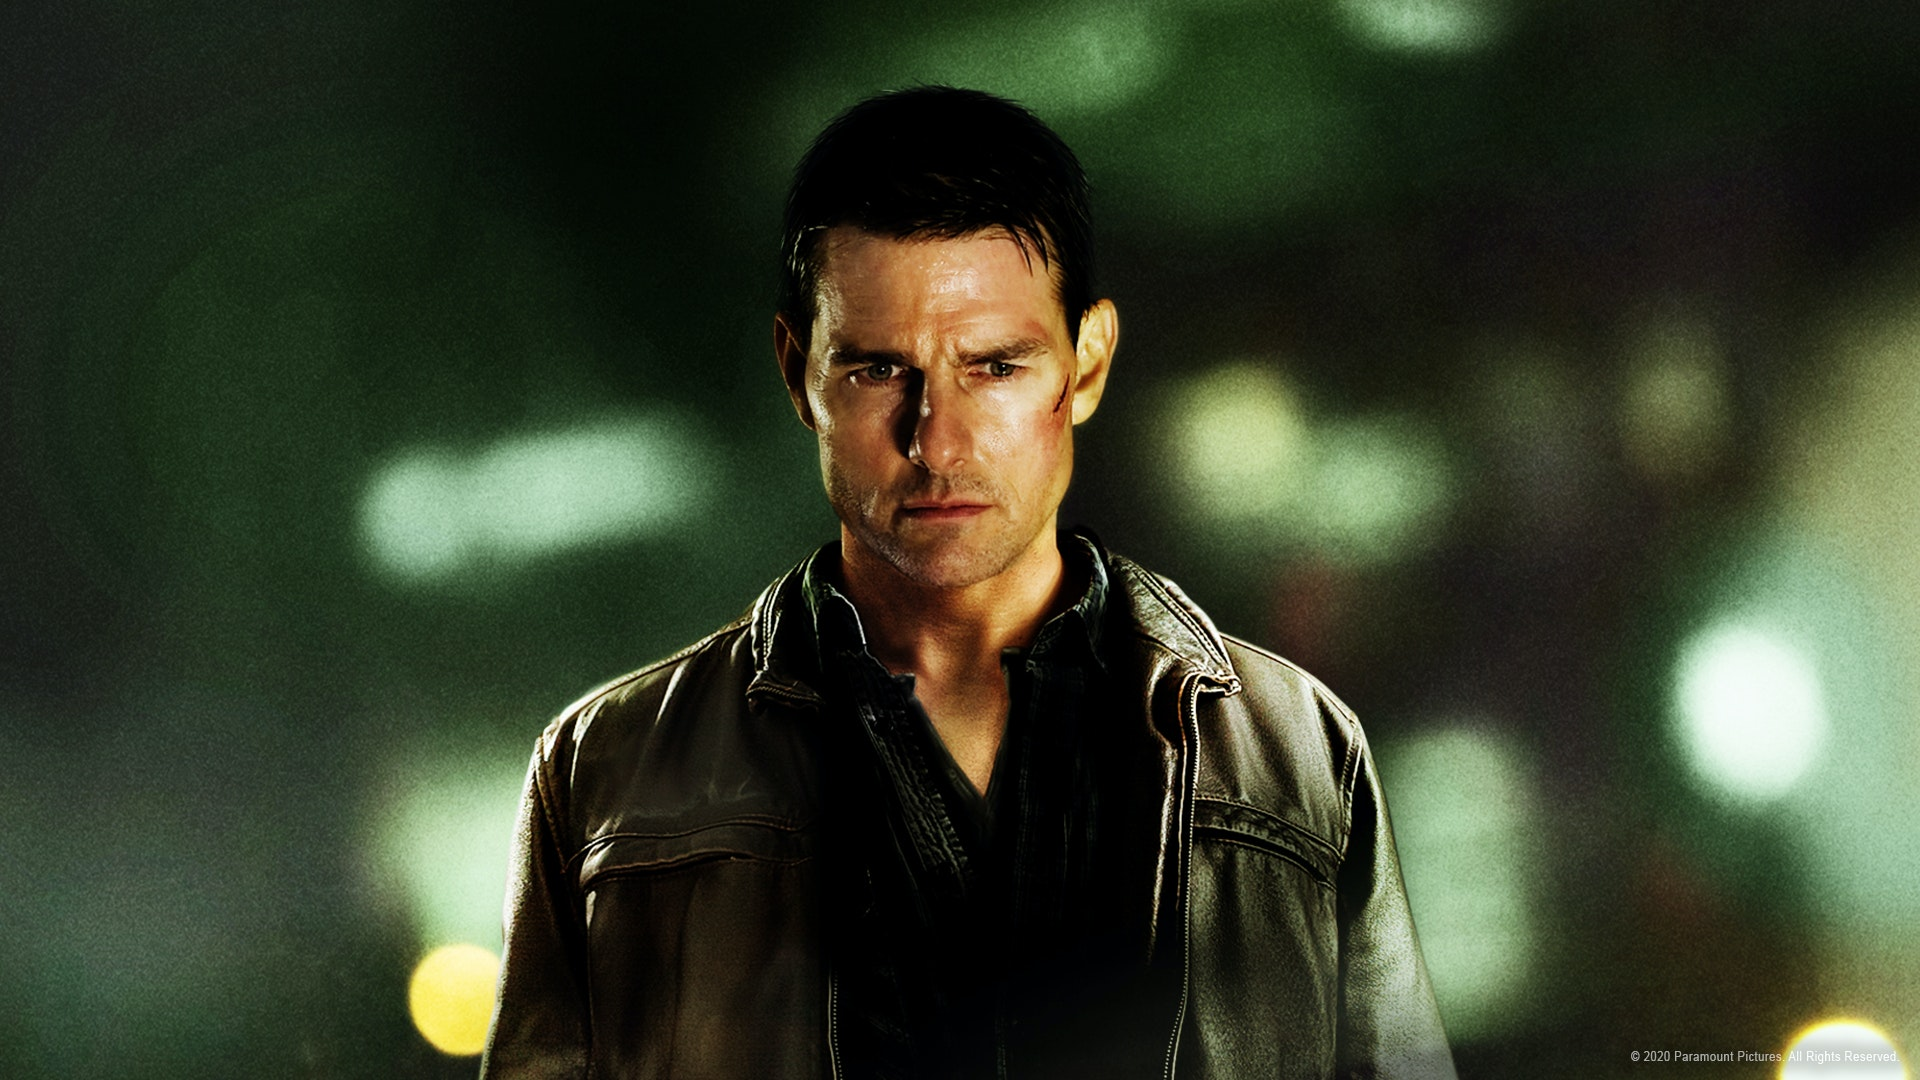 Watch Jack Reacher Online With Neon From 5 99